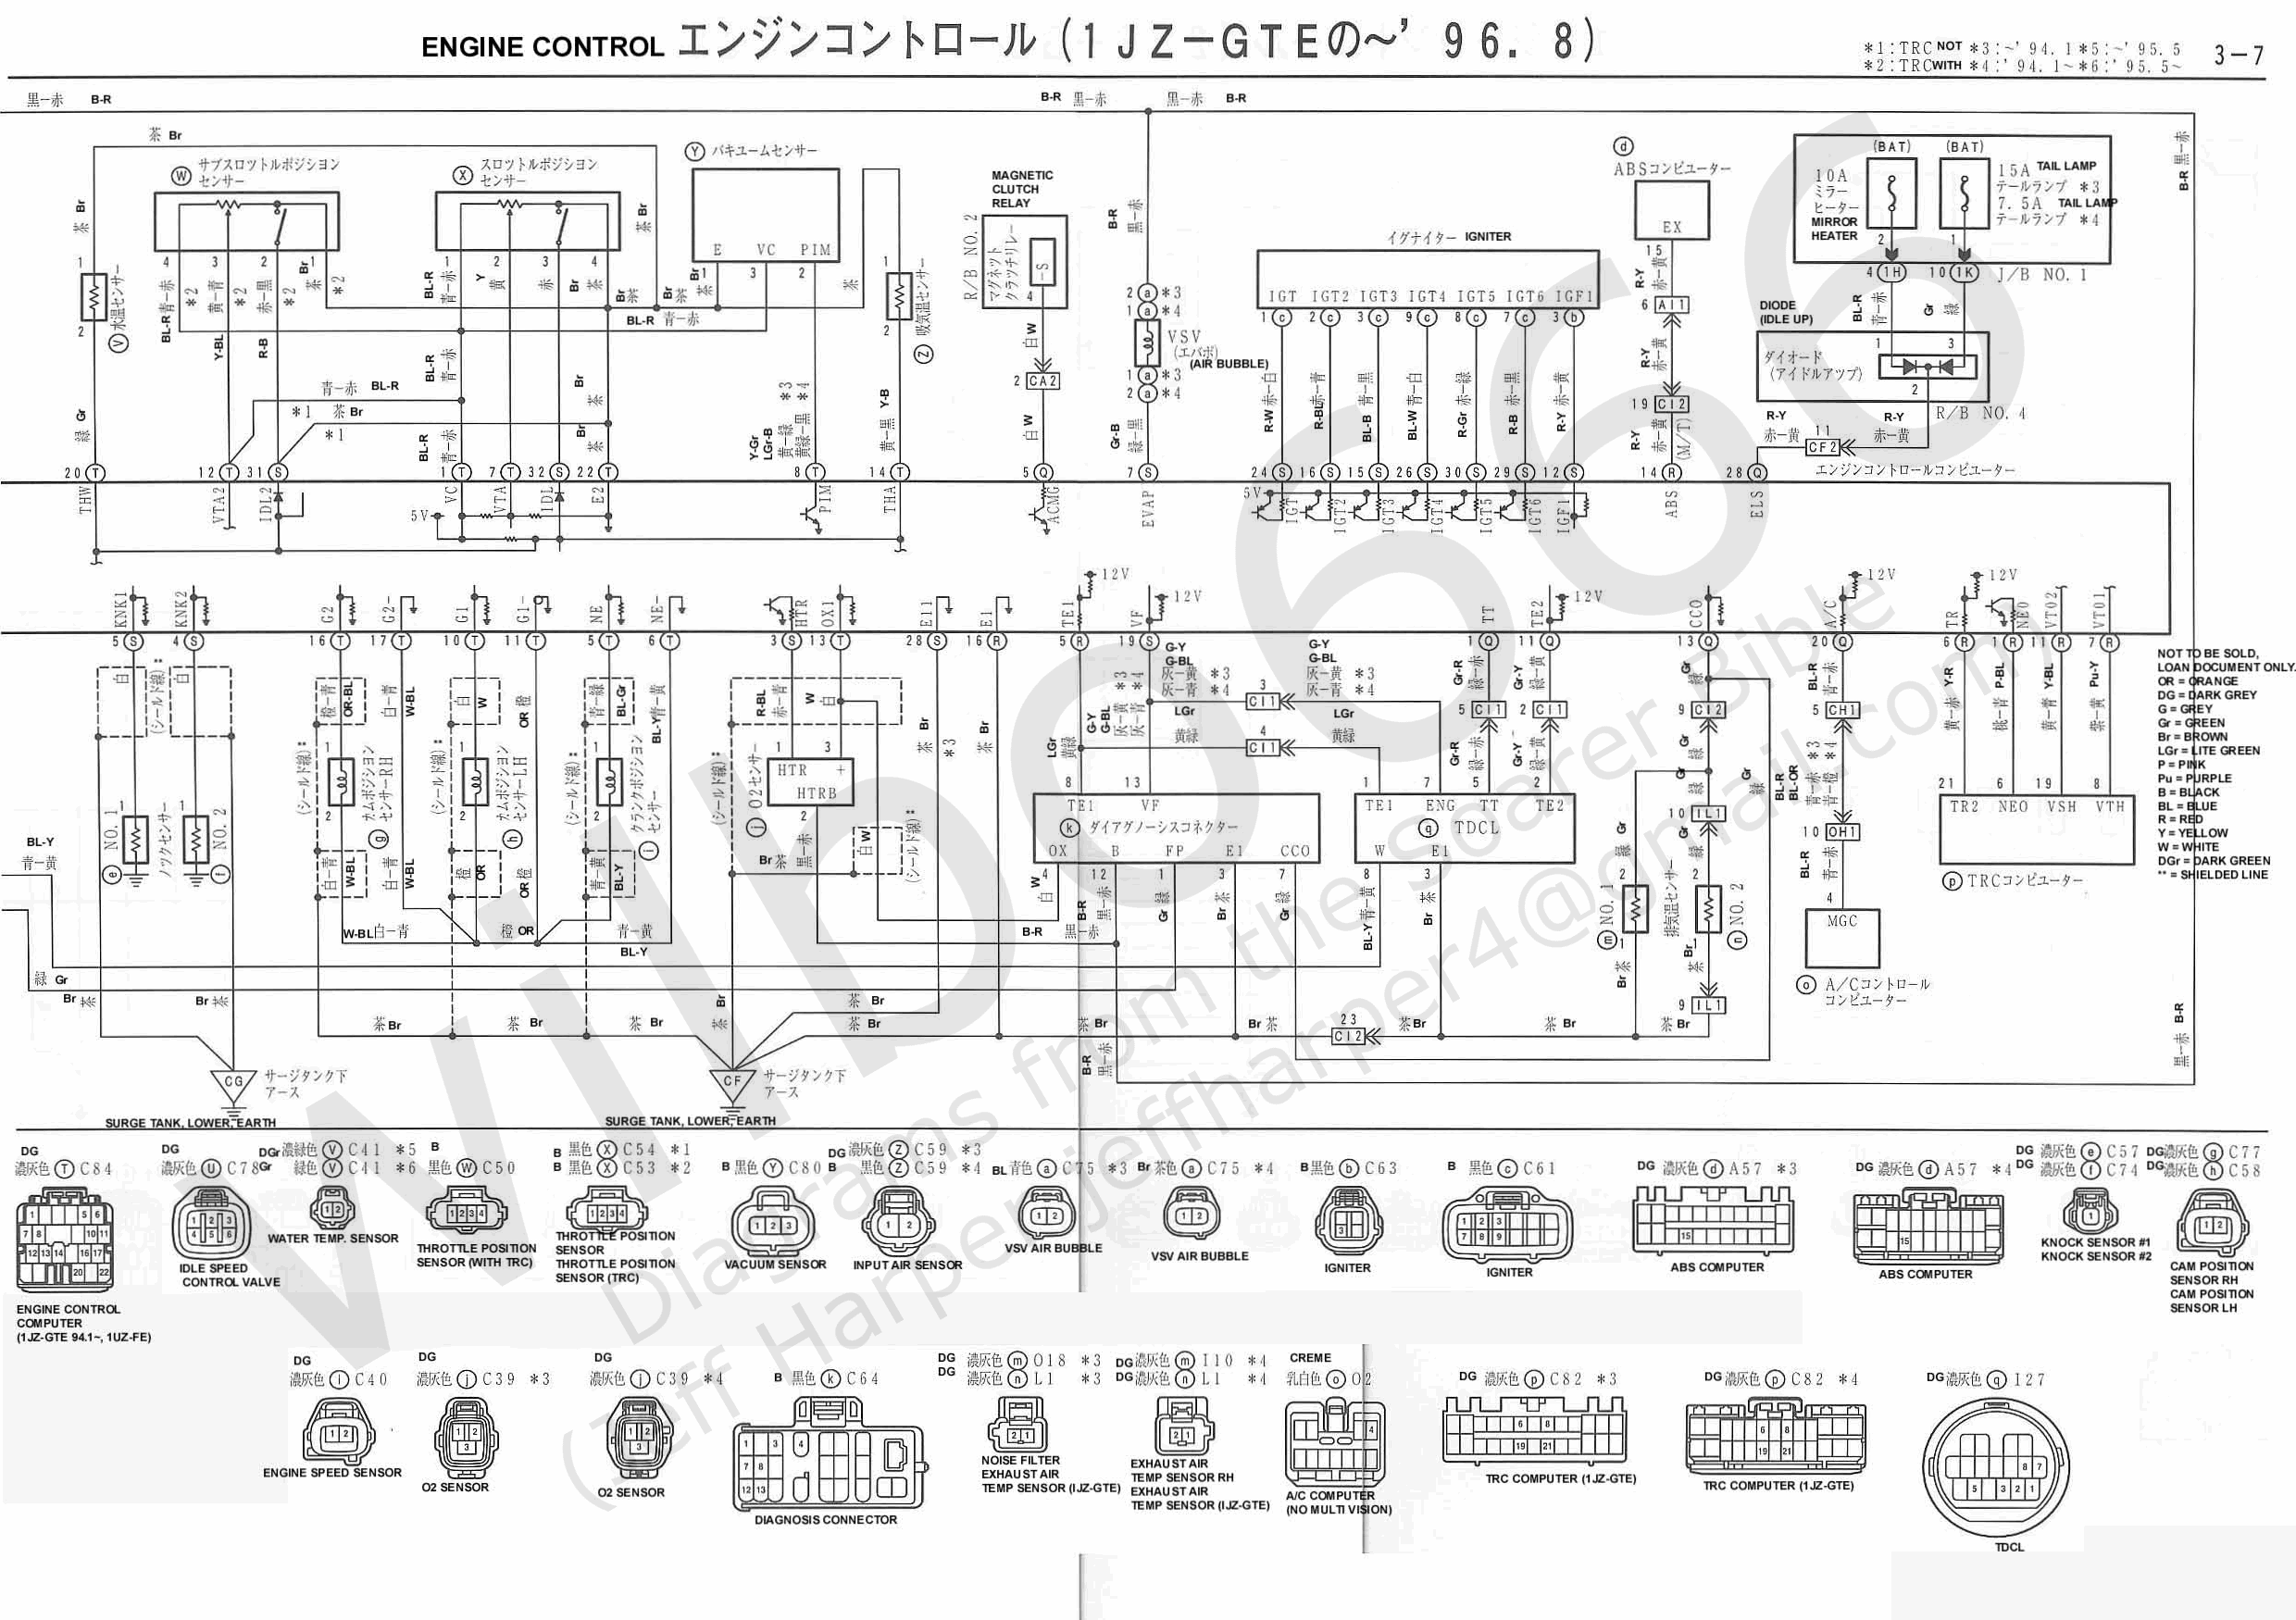 xZZ3x Electrical Wiring Diagram 6737105 3 7 toyota soarer wiring diagram toyota wiring diagrams instruction 1jz engine wiring diagram at eliteediting.co